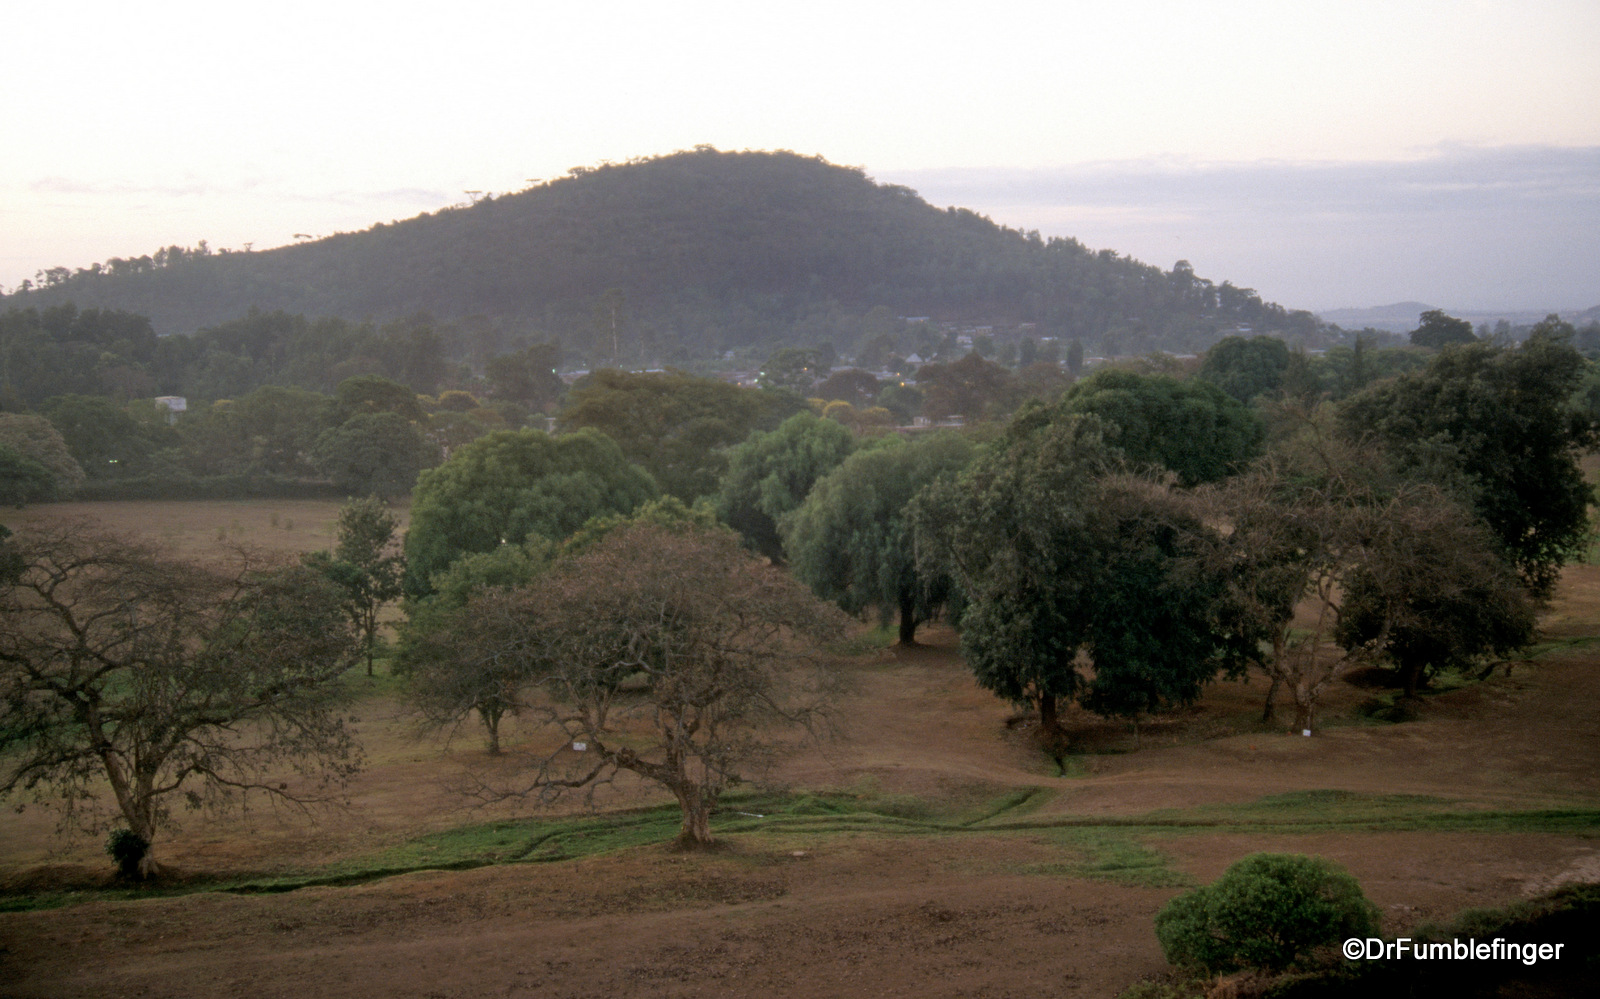 First dawn view of Arusha after nighttime arrival